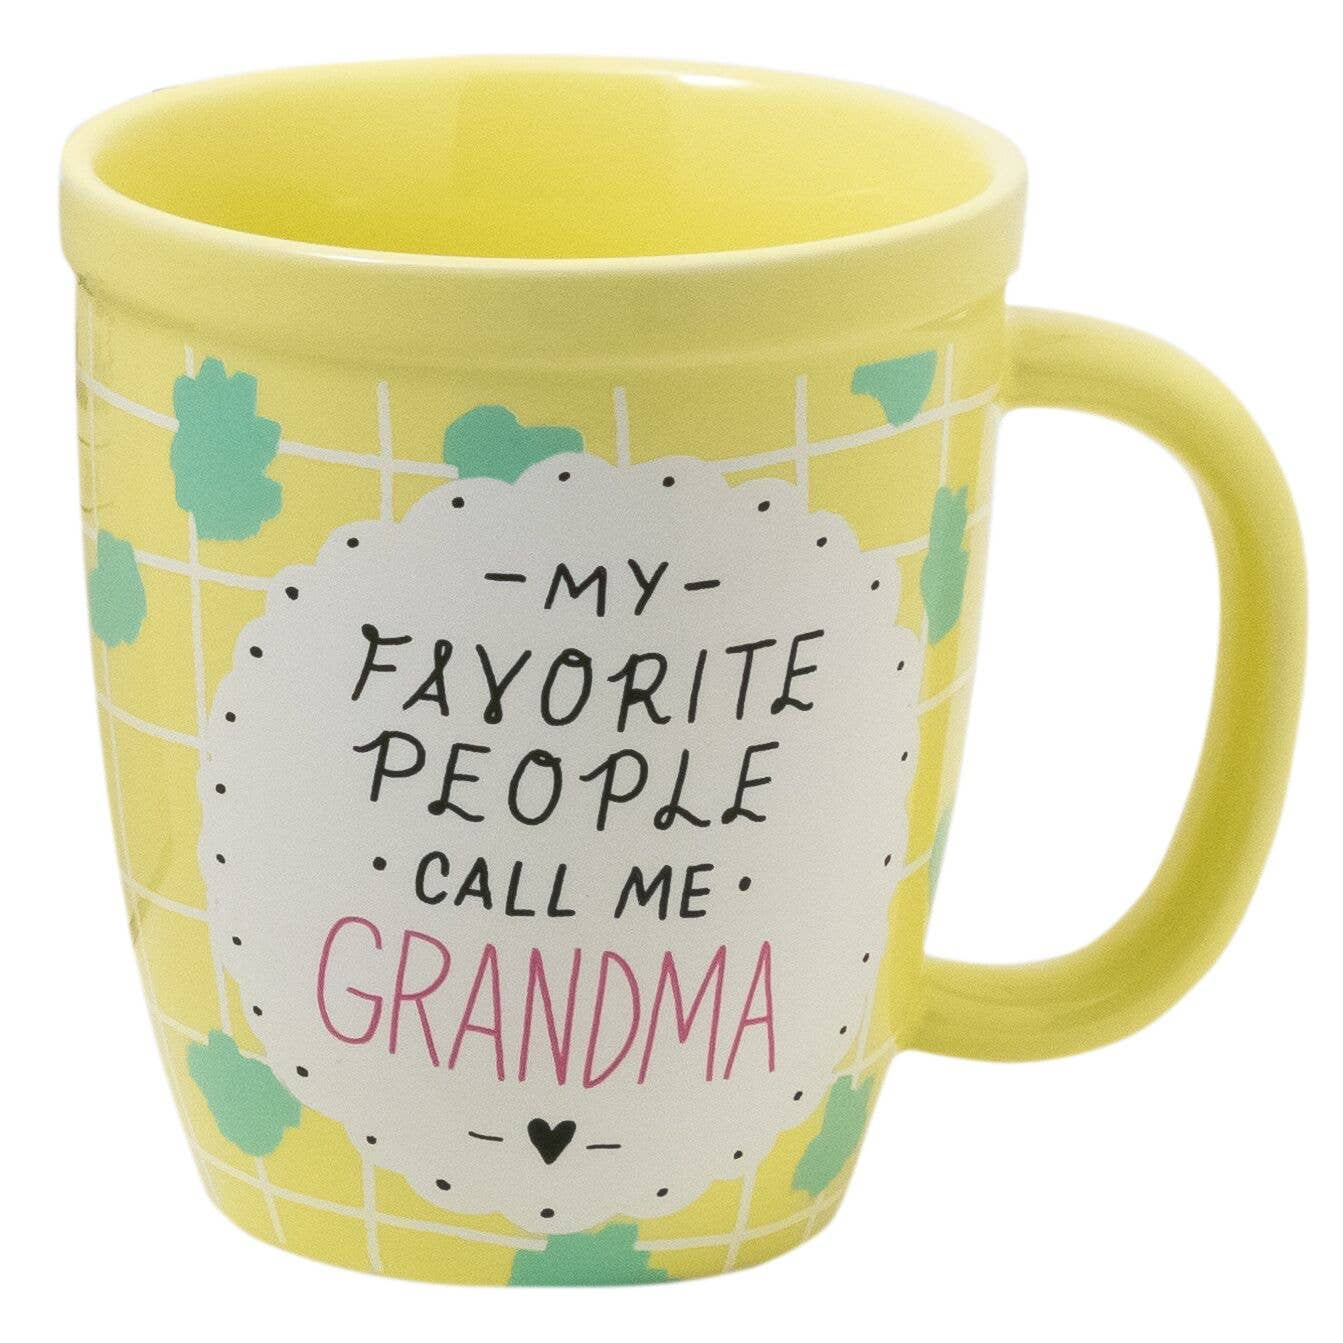 Favorite People Call Me Grandma Mug